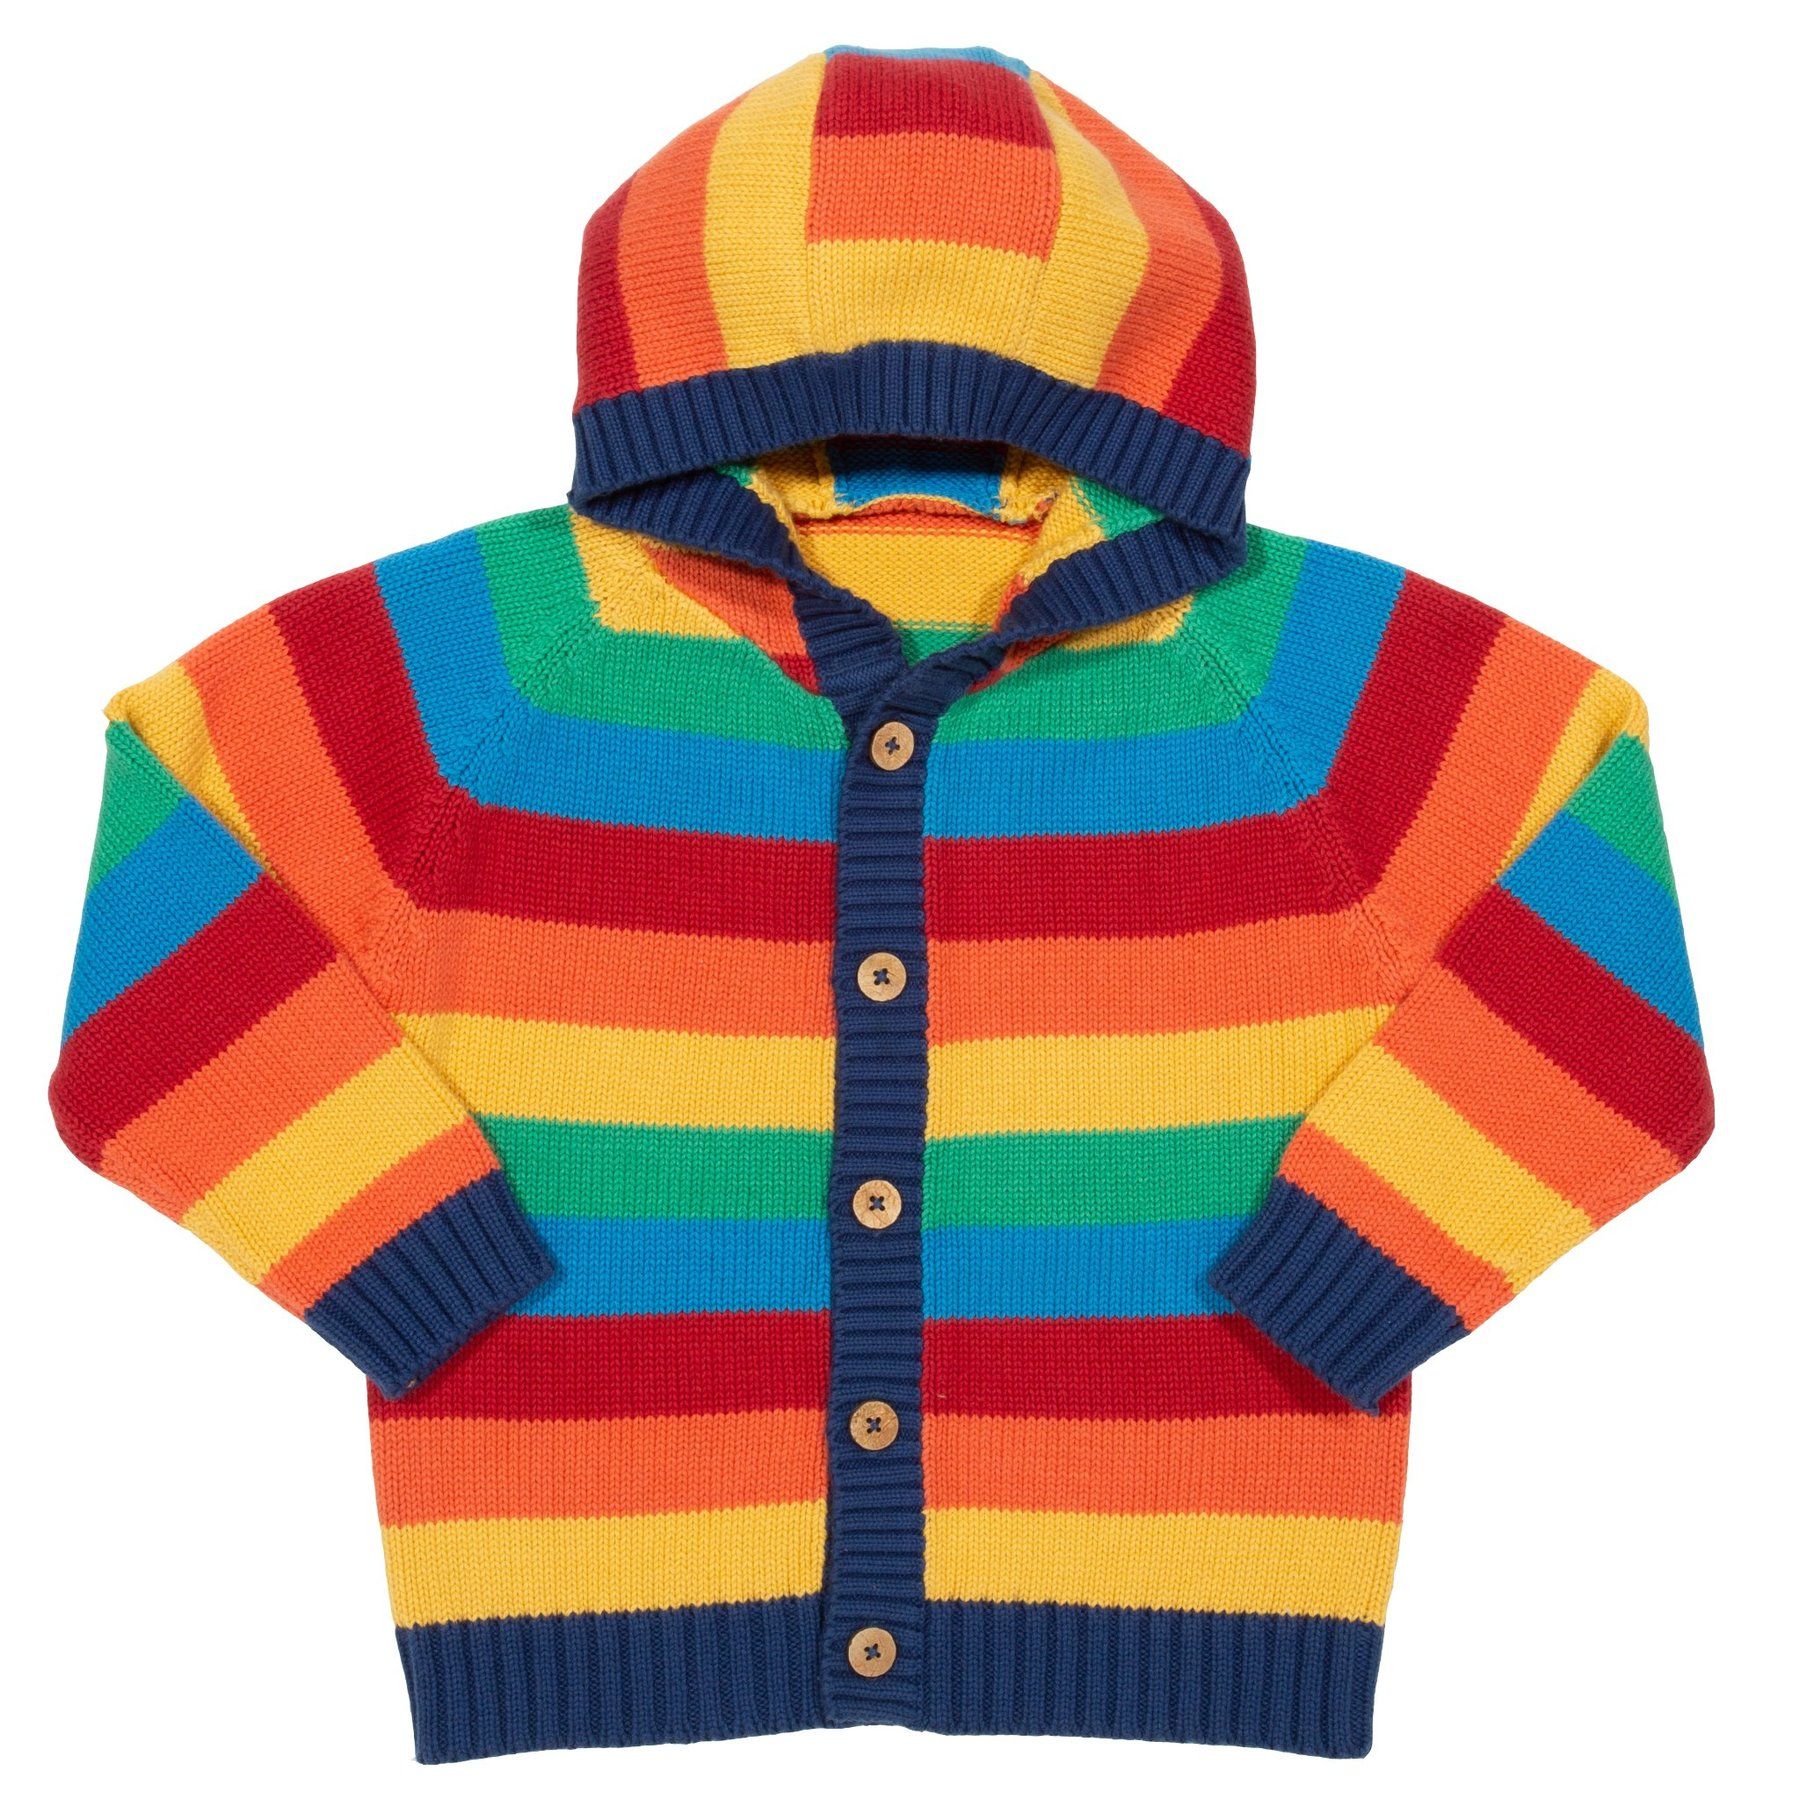 NOW £24 Kite Rainbow Knit Hoody